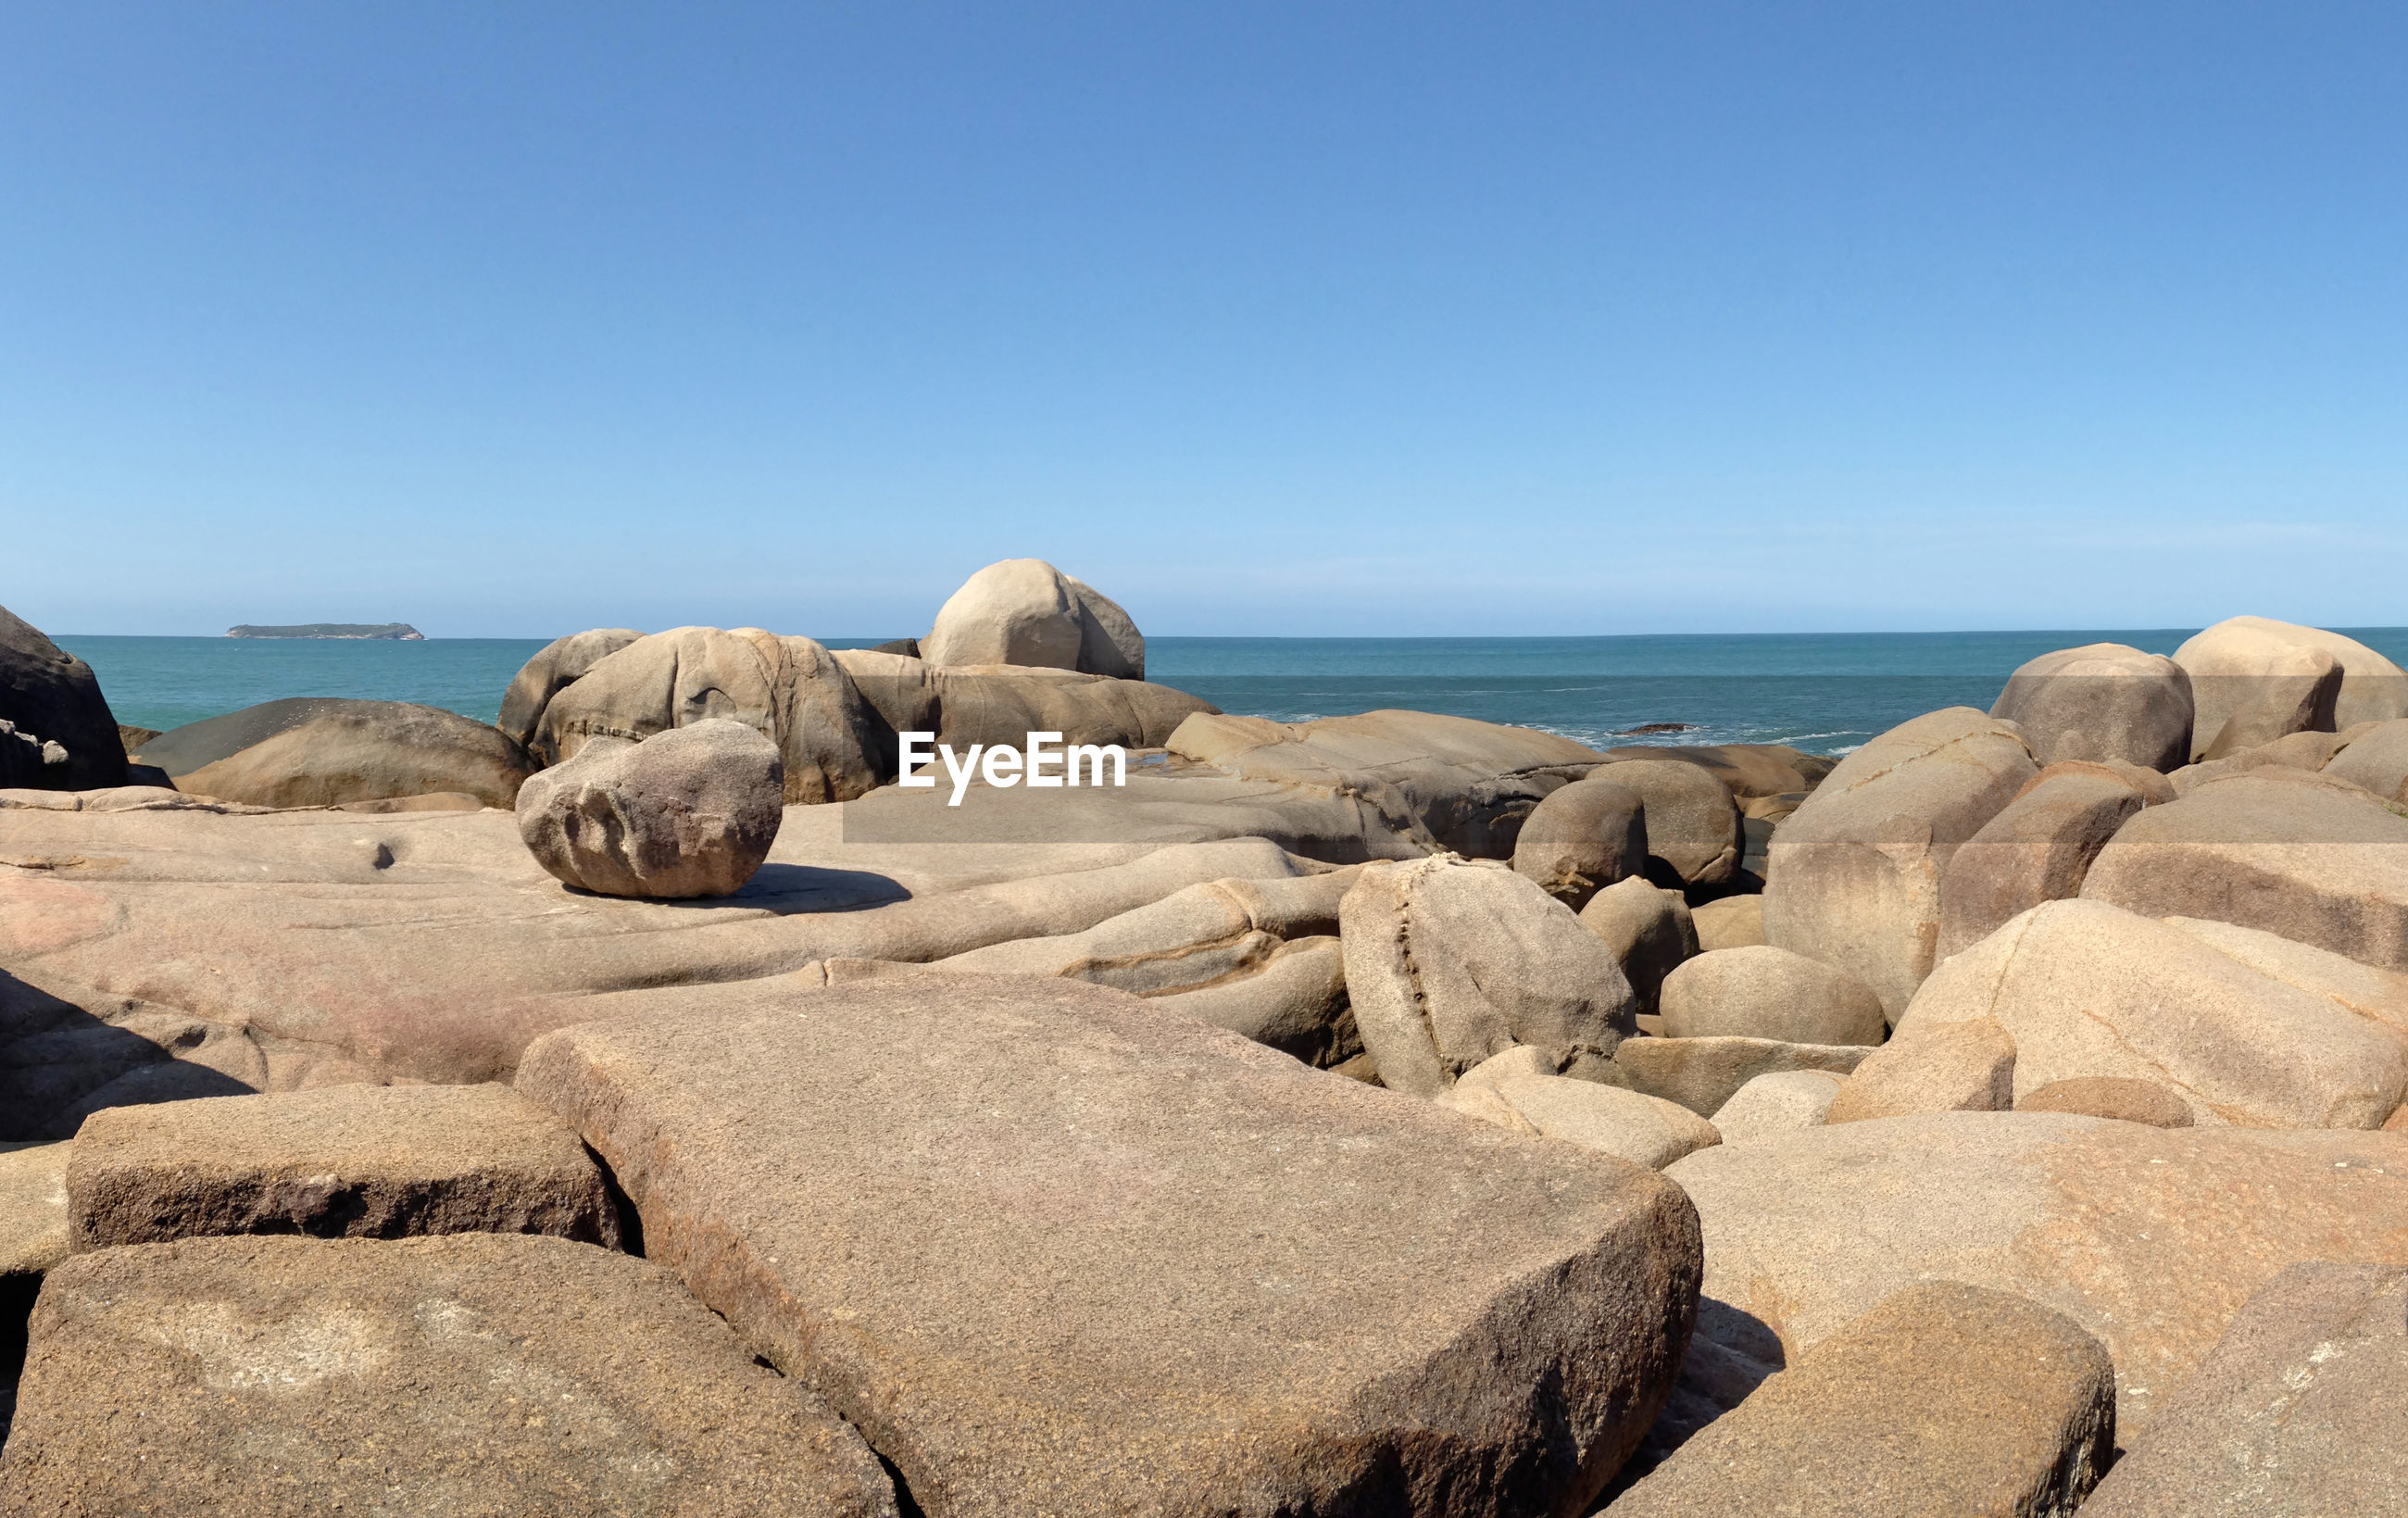 ROCKS ON SEA SHORE AGAINST CLEAR BLUE SKY